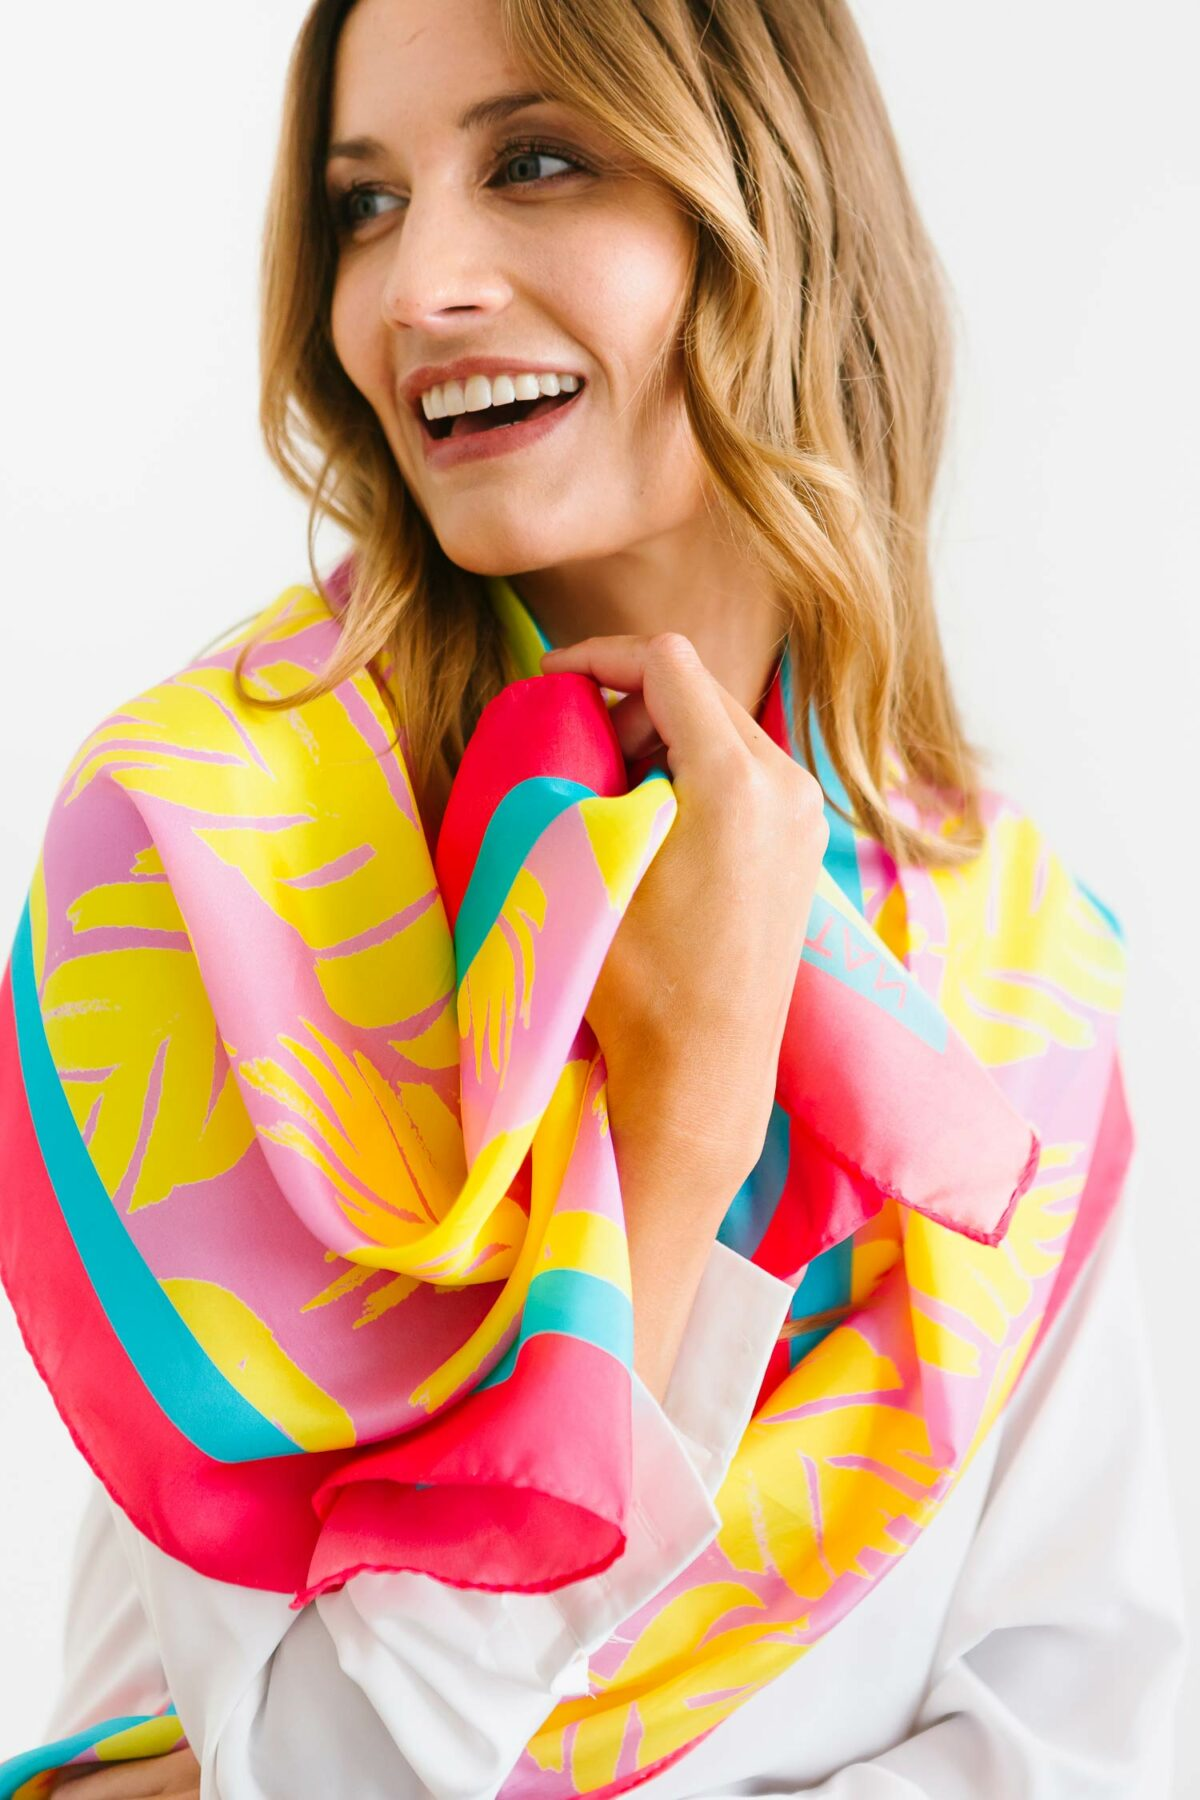 laughing woman wearing a colourful scarf